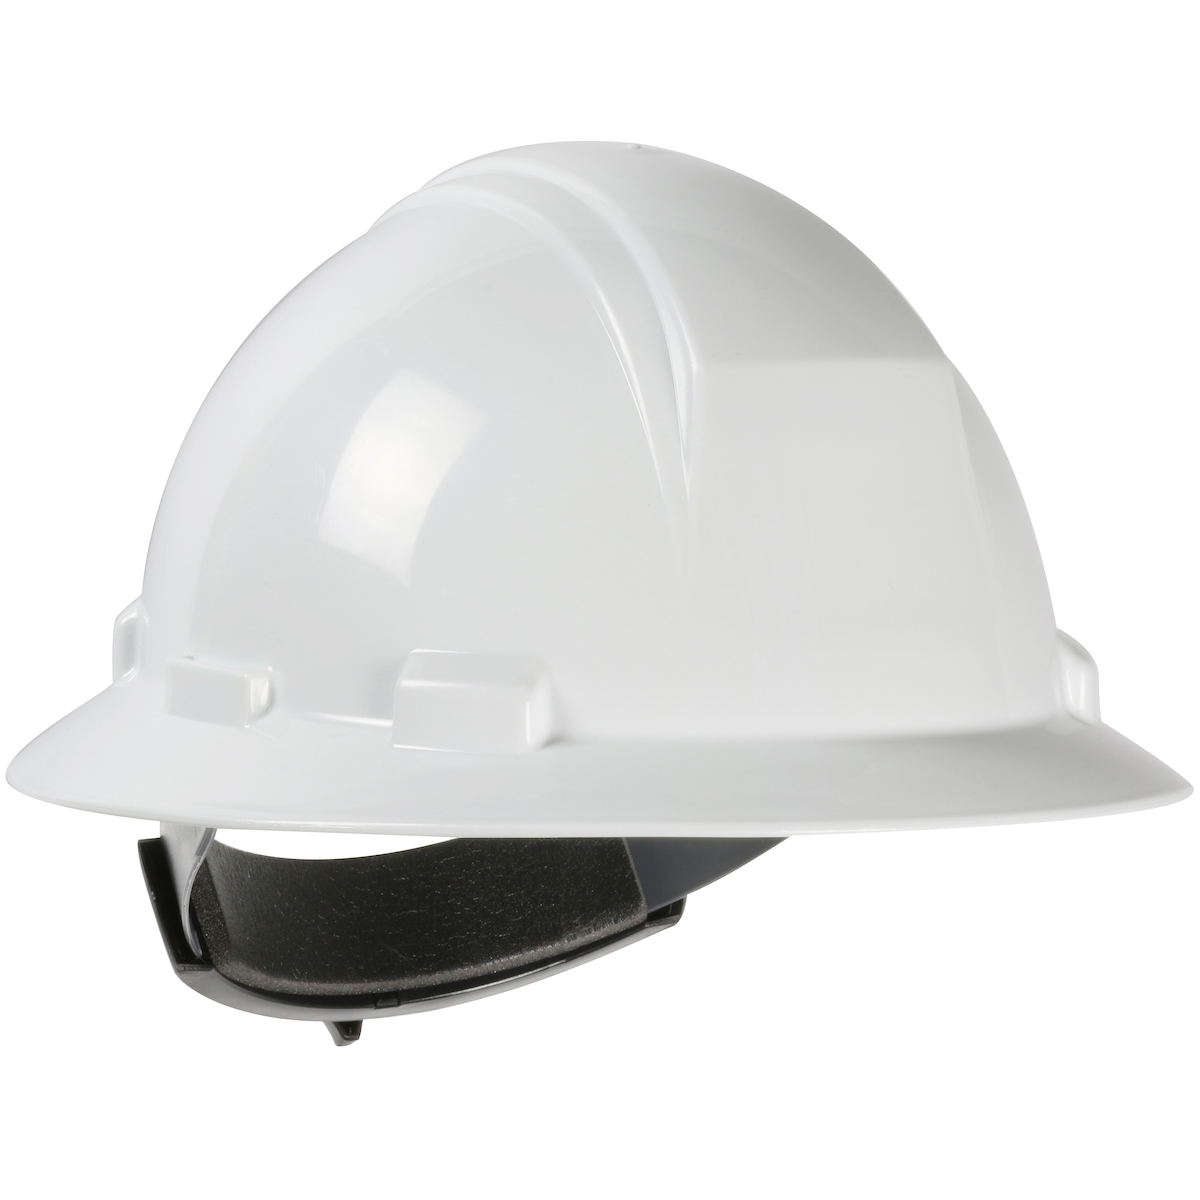 Type II Full Brim Hard Hat with HDPE Shell, 4-Point Textile Suspension and Wheel Ratchet Adjustment, White, OS